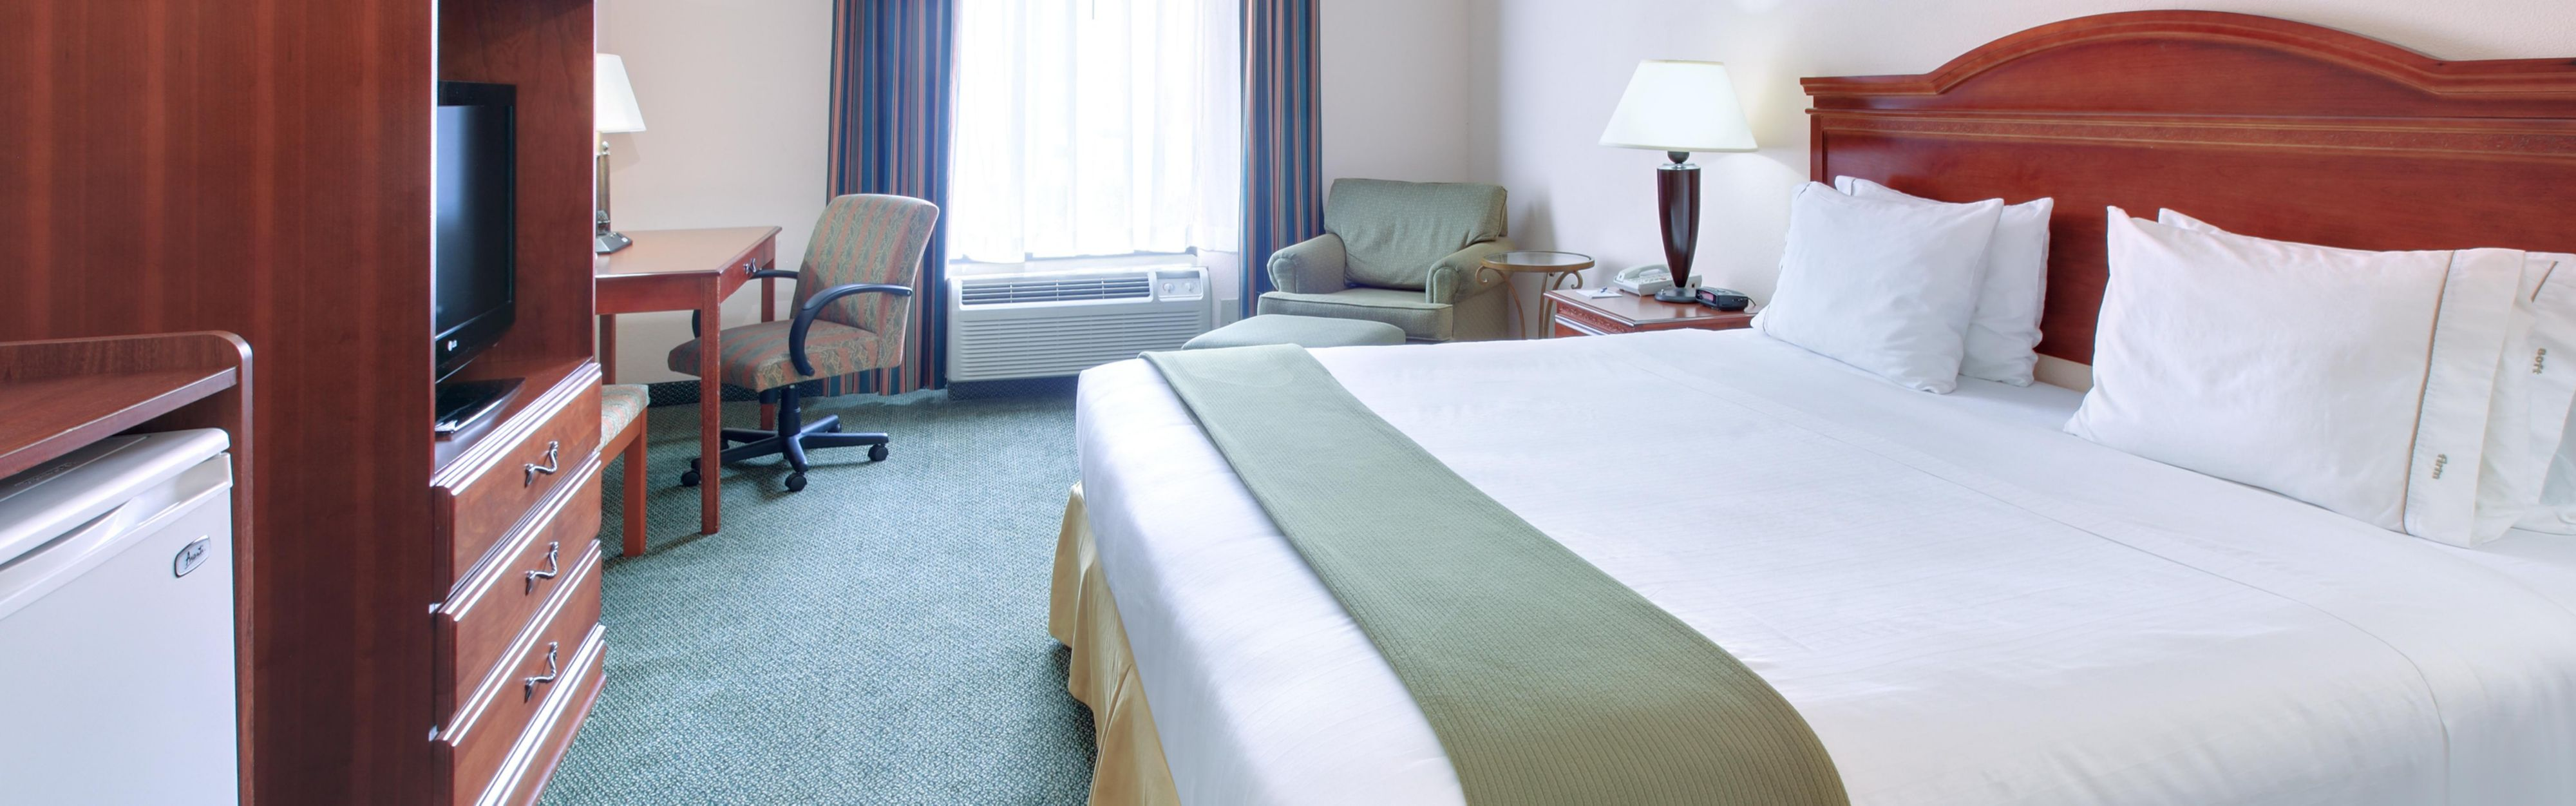 Holiday Inn Express & Suites Cleveland image 1